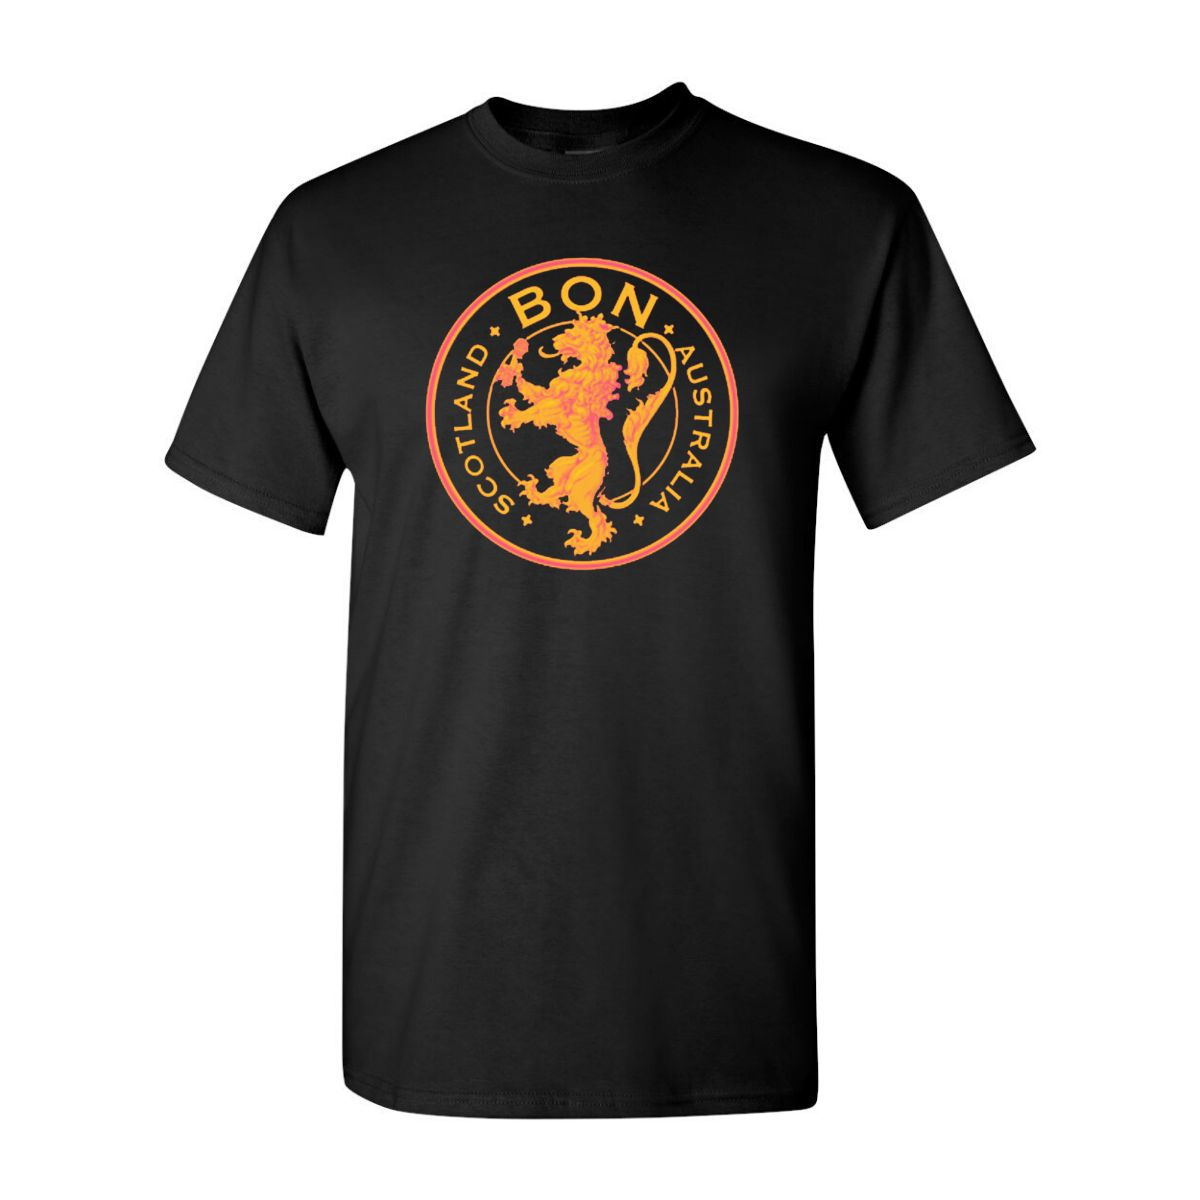 Crested Embers T-Shirt